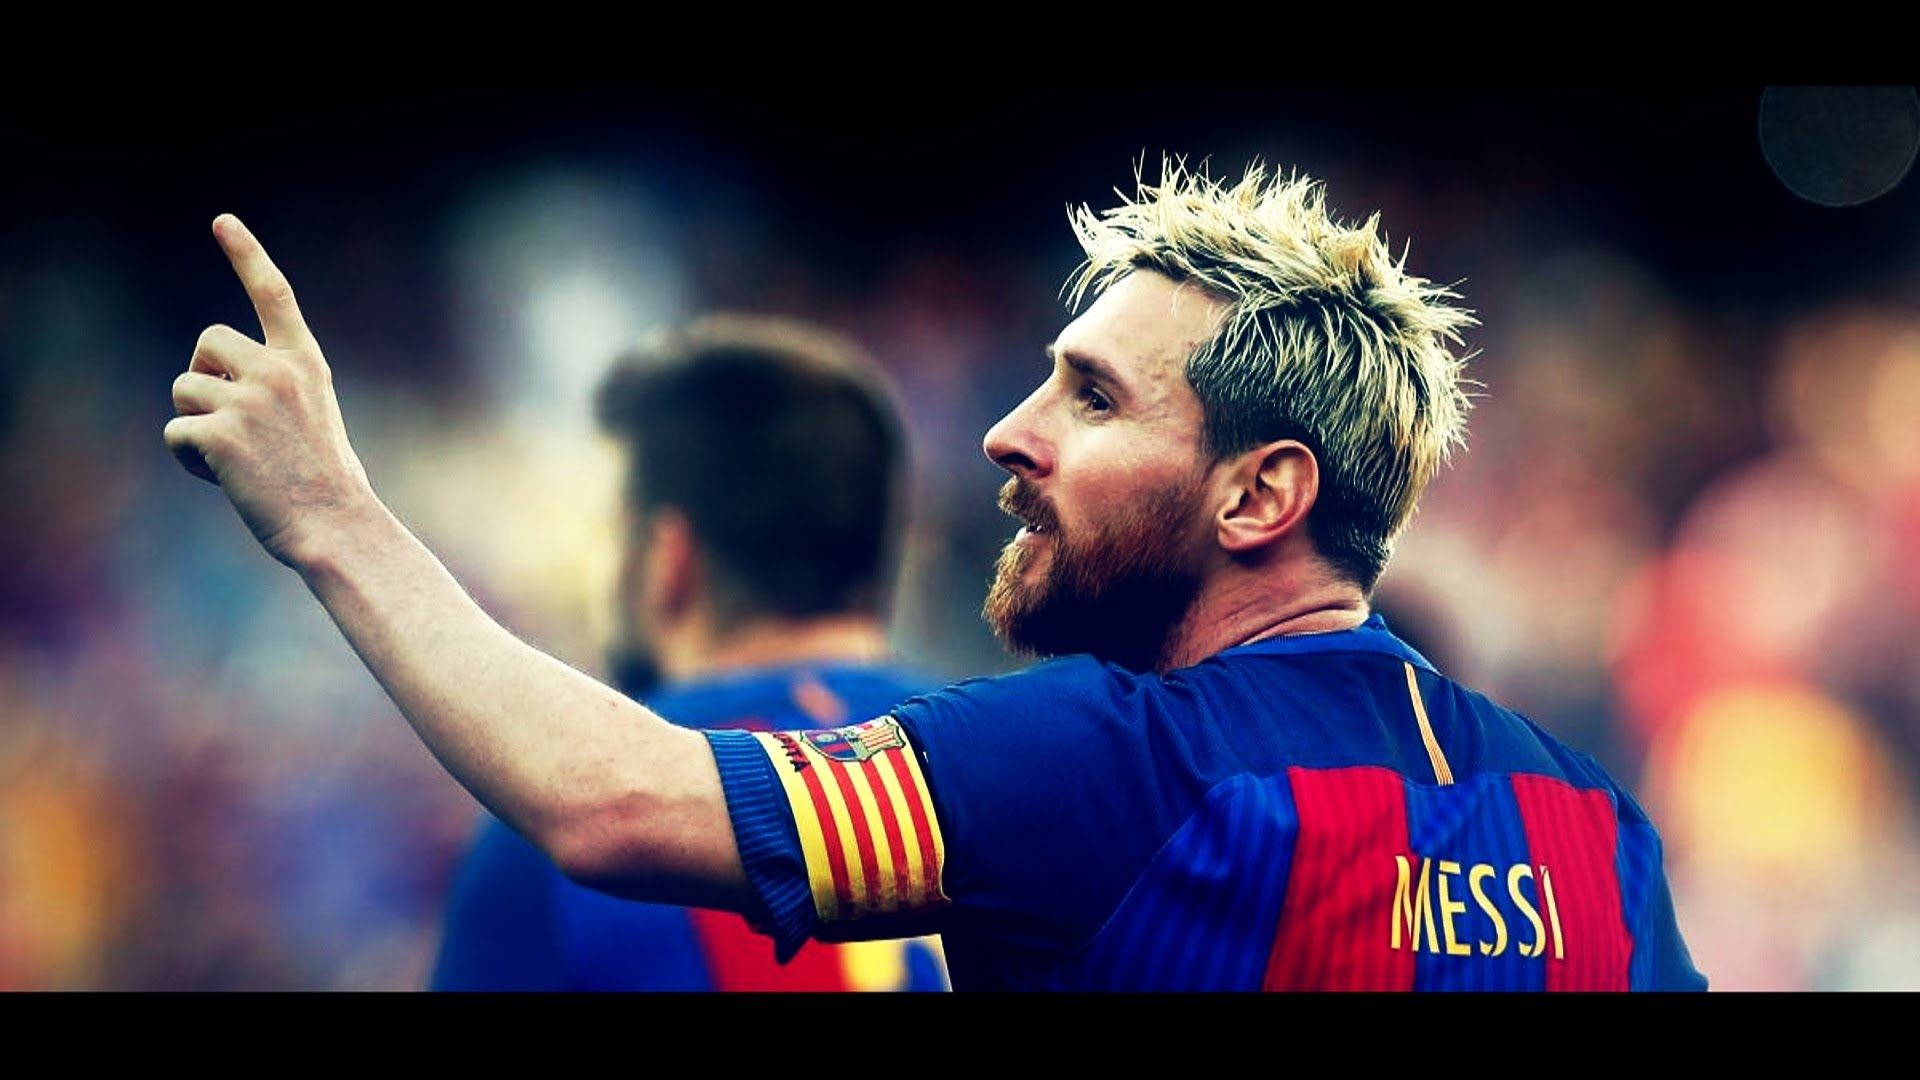 Messi Hd Wallpapers ①